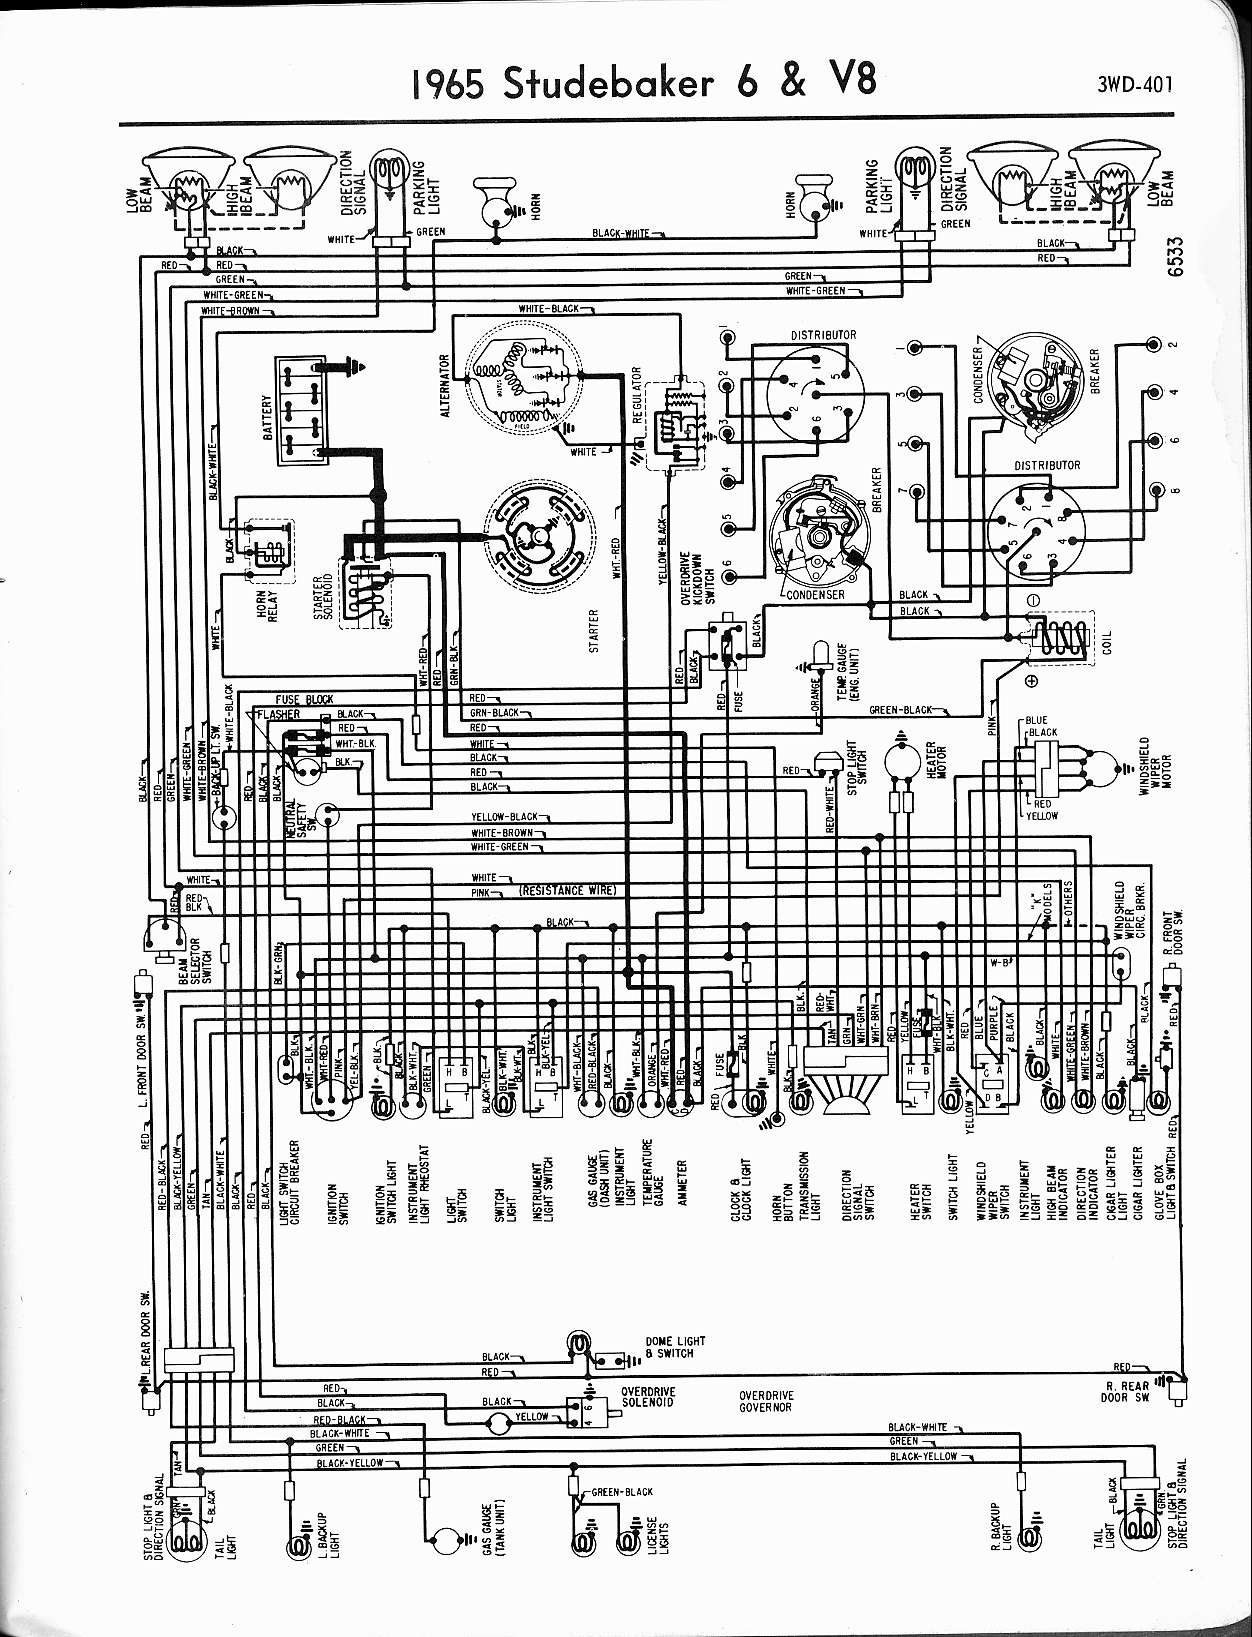 studebaker wiring diagrams the old car manual project rh oldcarmanualproject com Electrical Wiring Diagrams for Cars 2009 Club Car Wiring Diagram